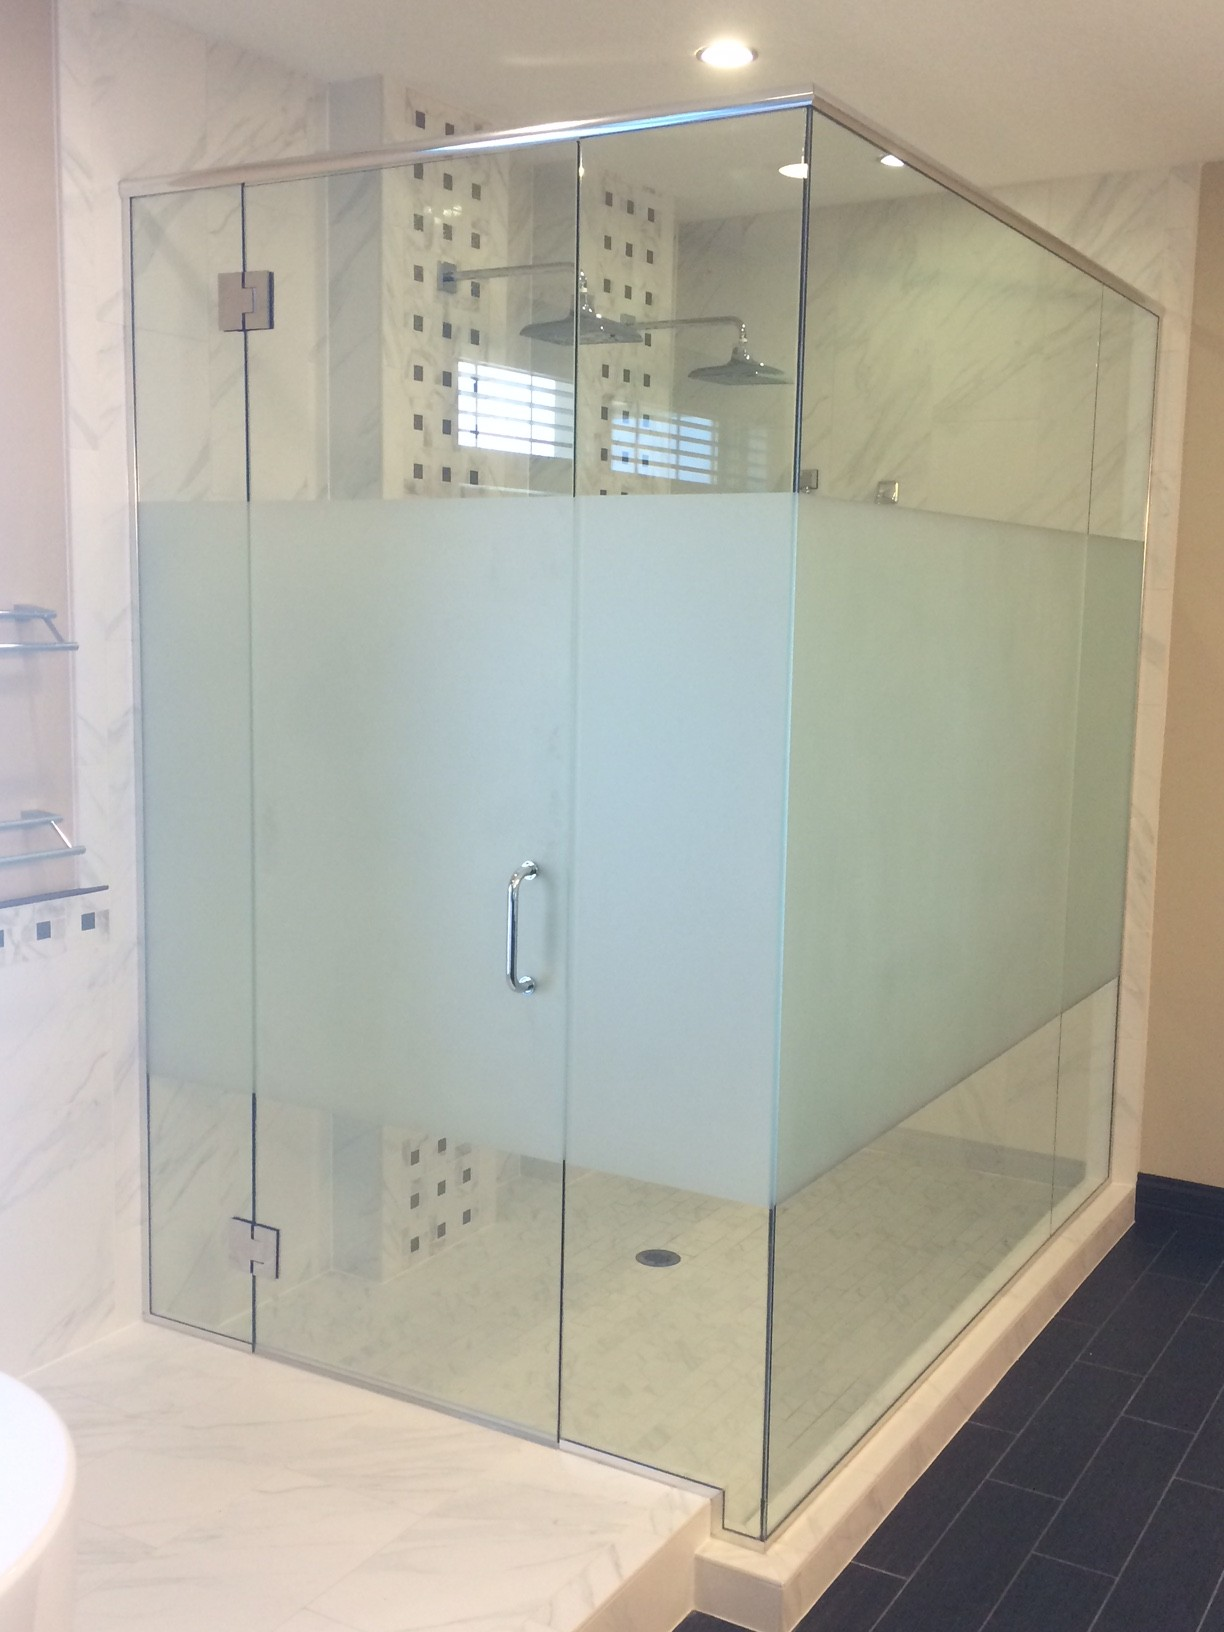 inline glassbathroom shower with bathrooms in homes metro by door glass showers bathroom